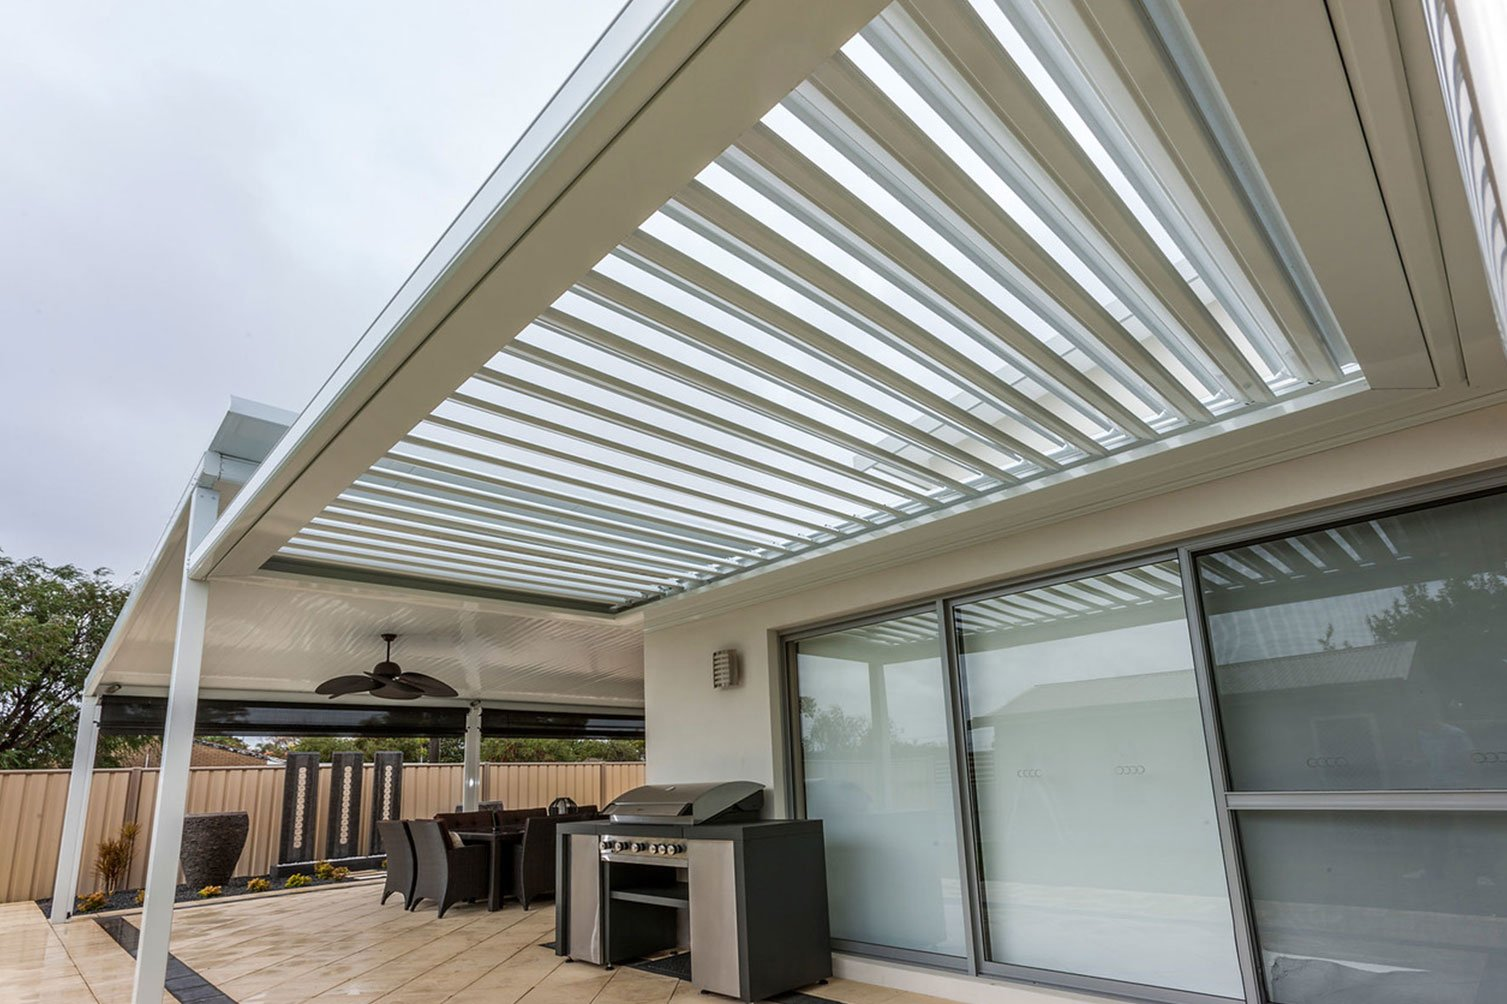 Patio builders made opening sunroofs that gives relaxing cool breeze on day in Byron Bay